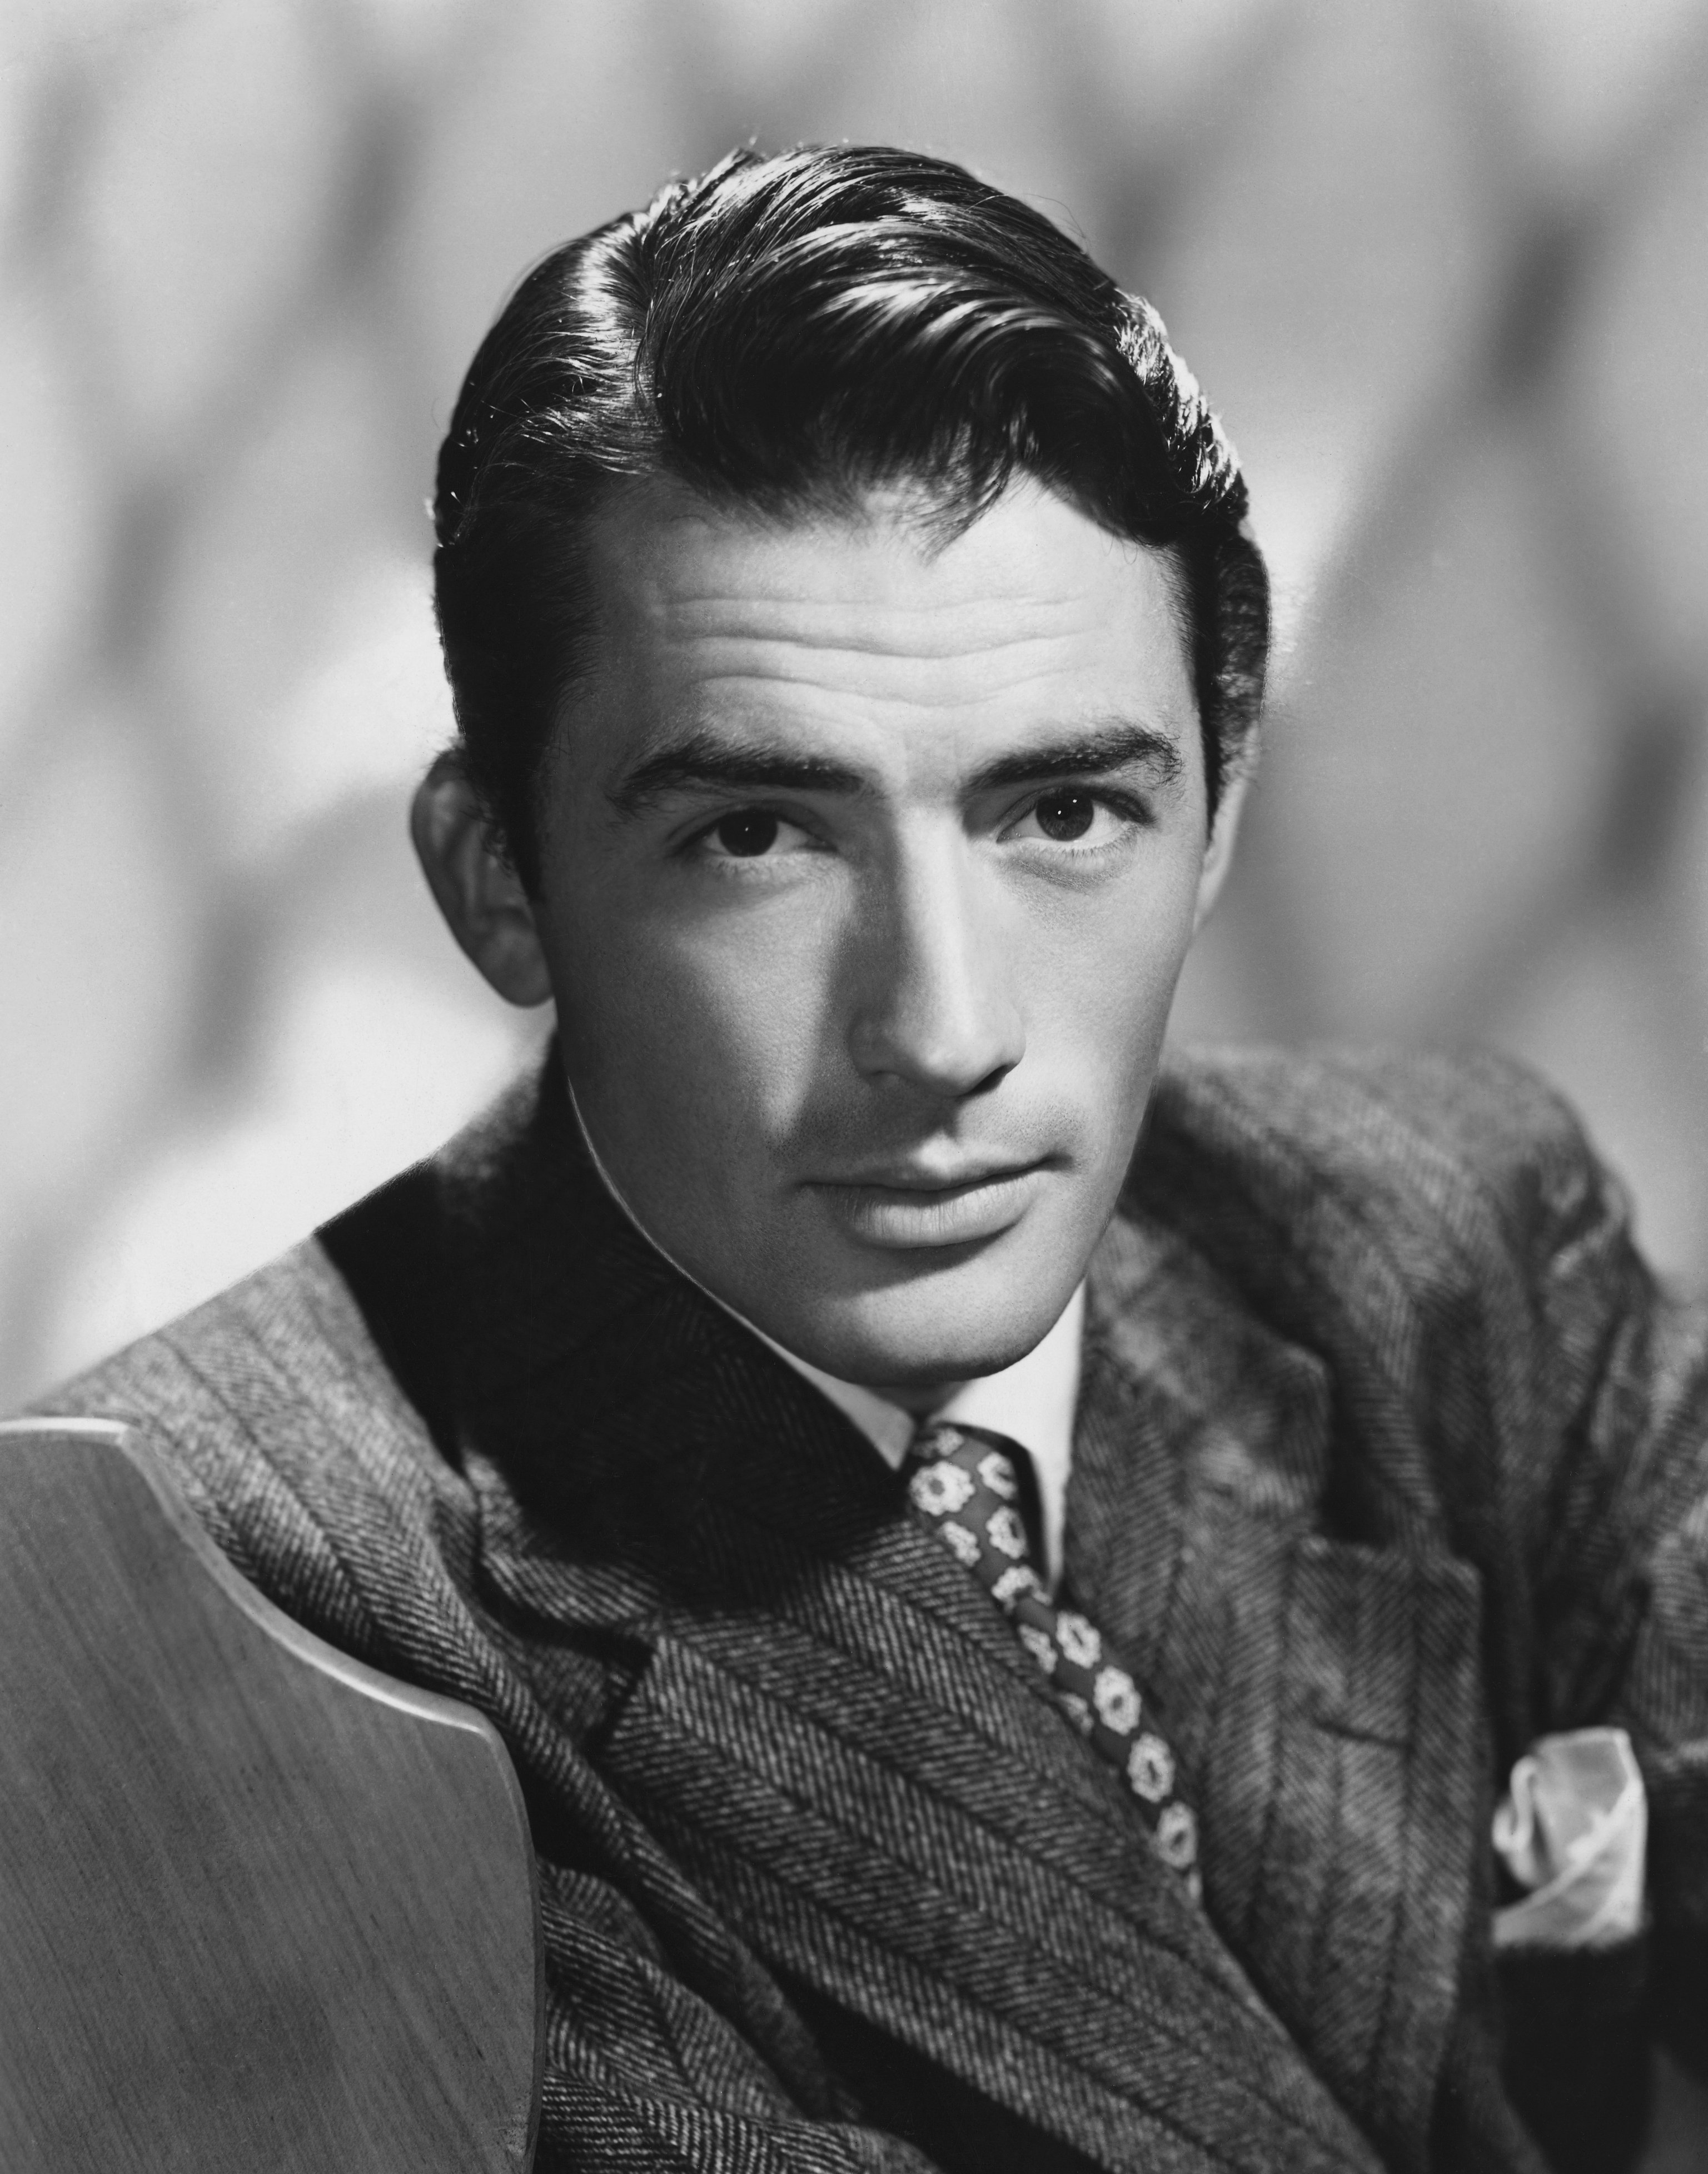 Image Source: Getty Images/Photo of Gregory Peck